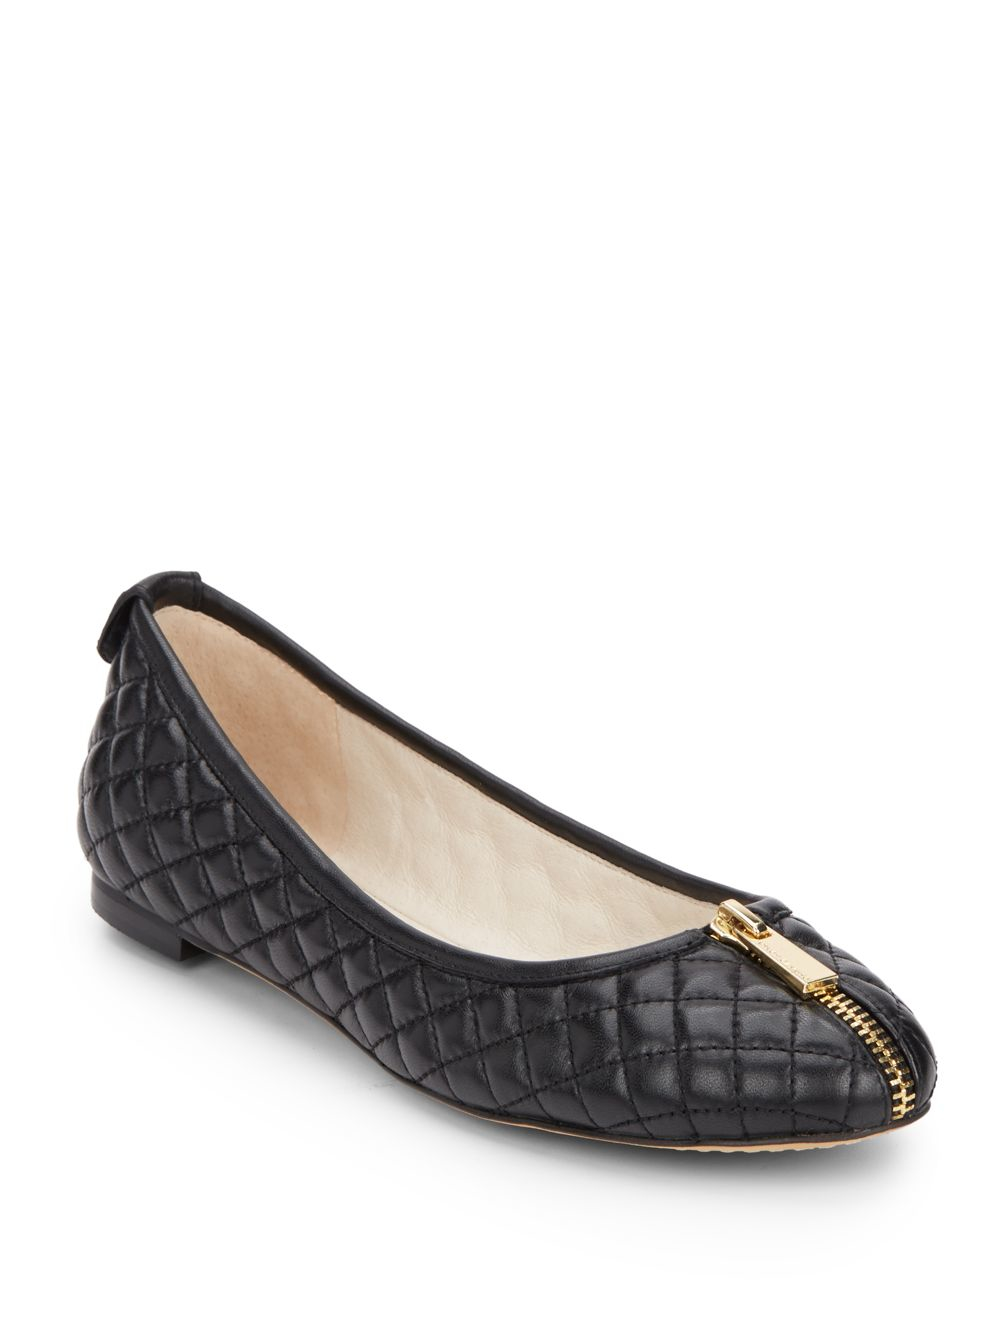 Lyst Vince Camuto Zip Trim Quilted Leather Ballet Flats